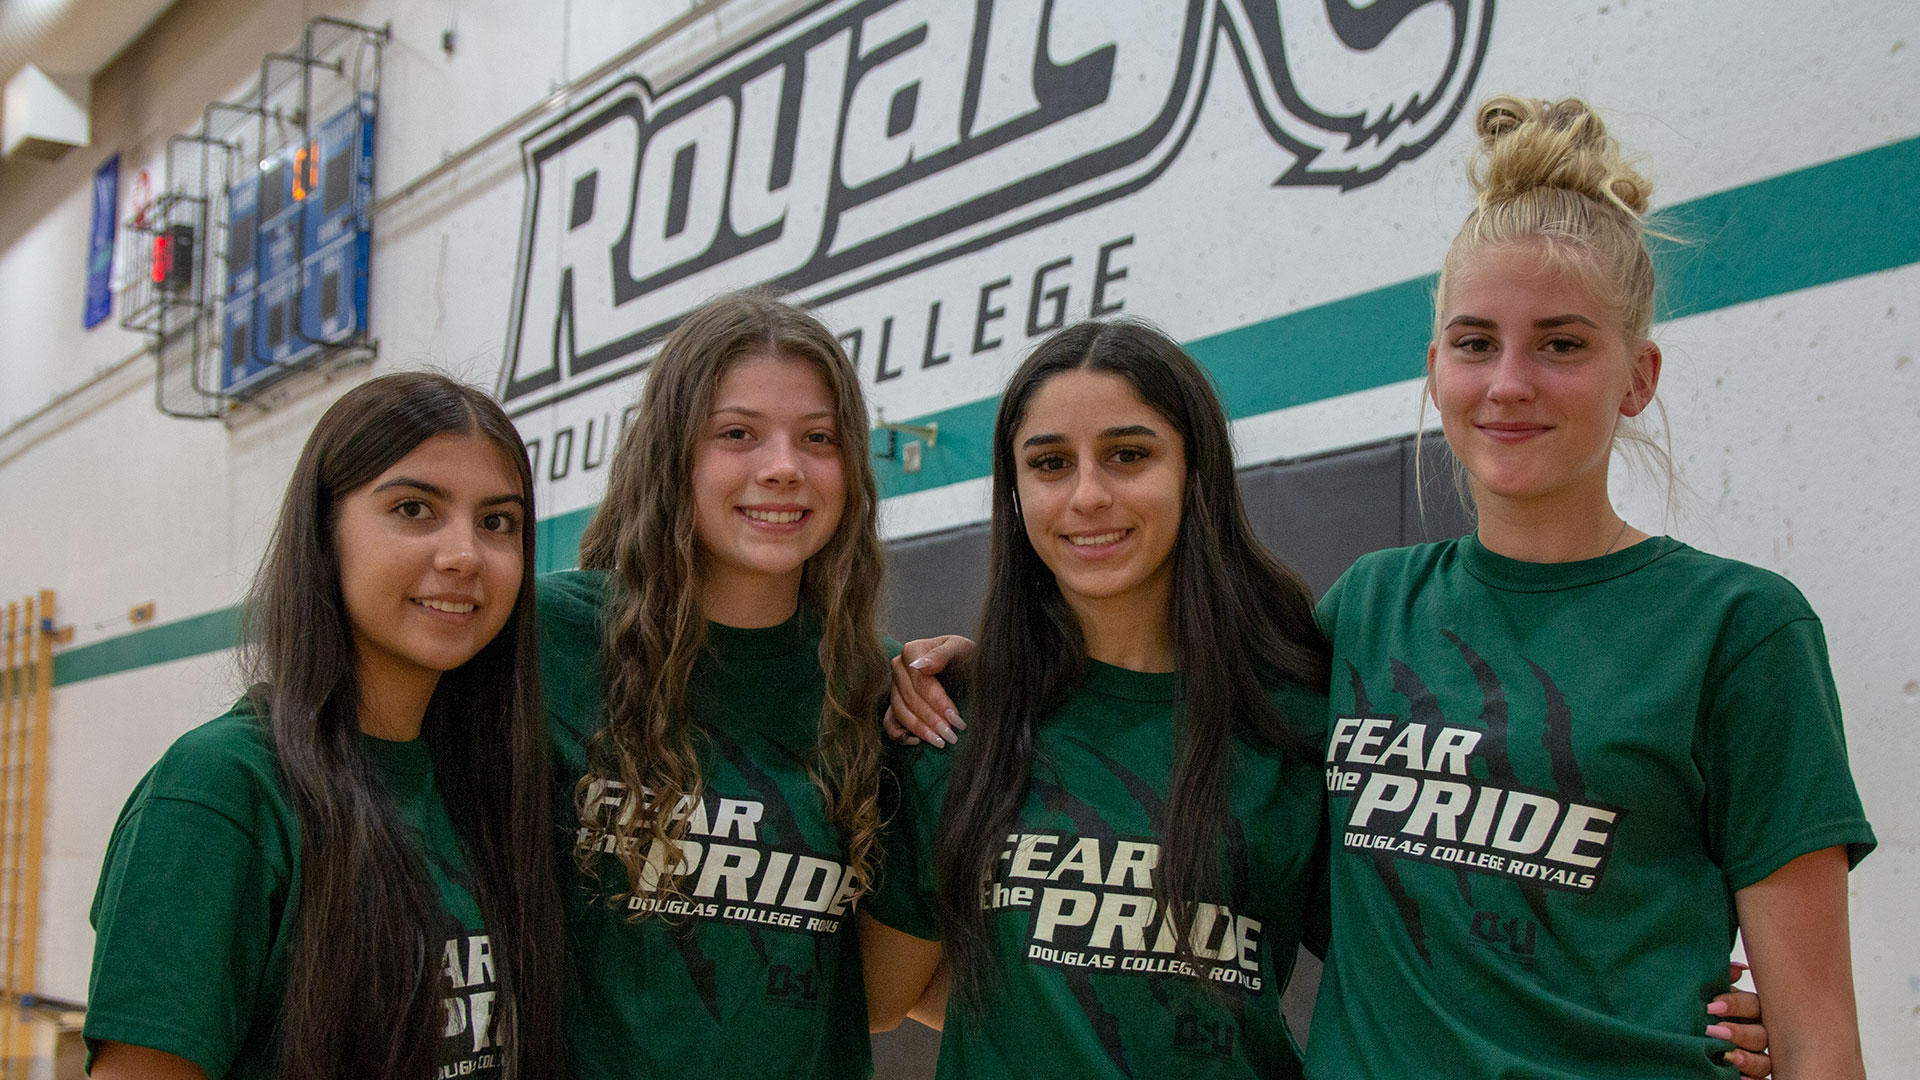 Newest additions to the 2019-20 Royals recruiting class. Pictured L-R: Kya Cleto, Taylor Spong, Isabella Silva, and Sophie Irvine